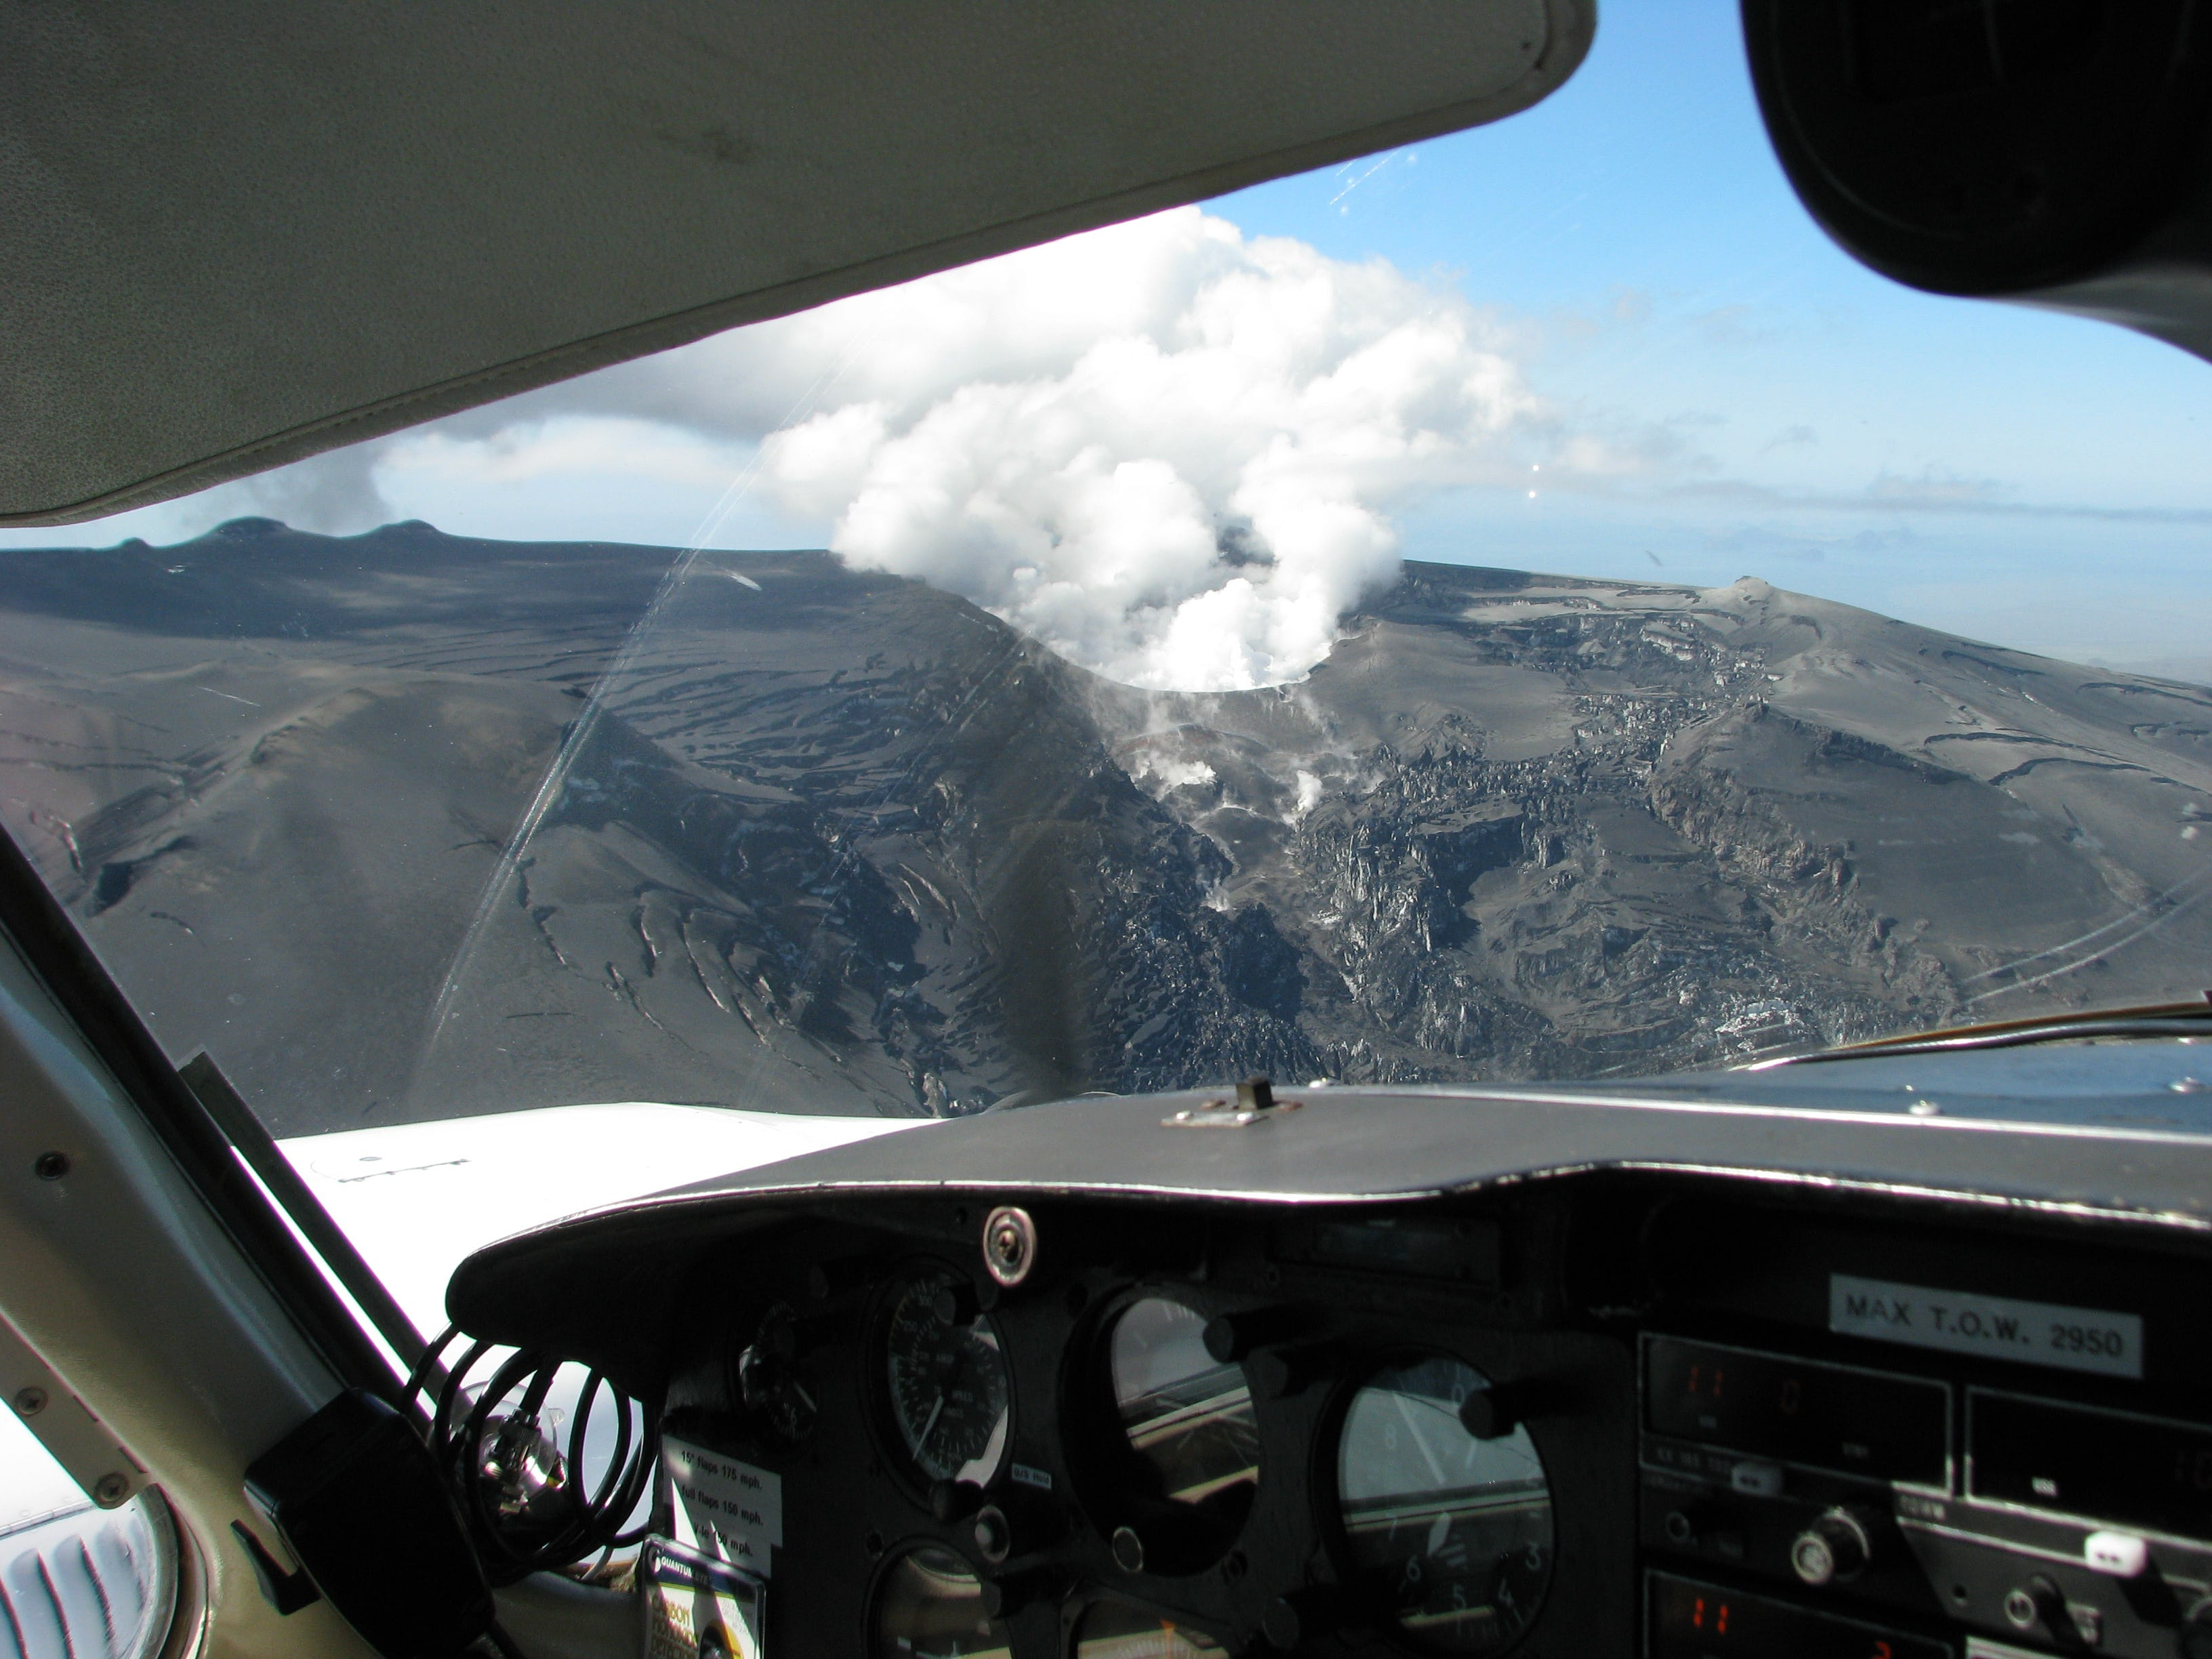 An extremely dramatic perspective from the cockpit of a sightseeing plane.